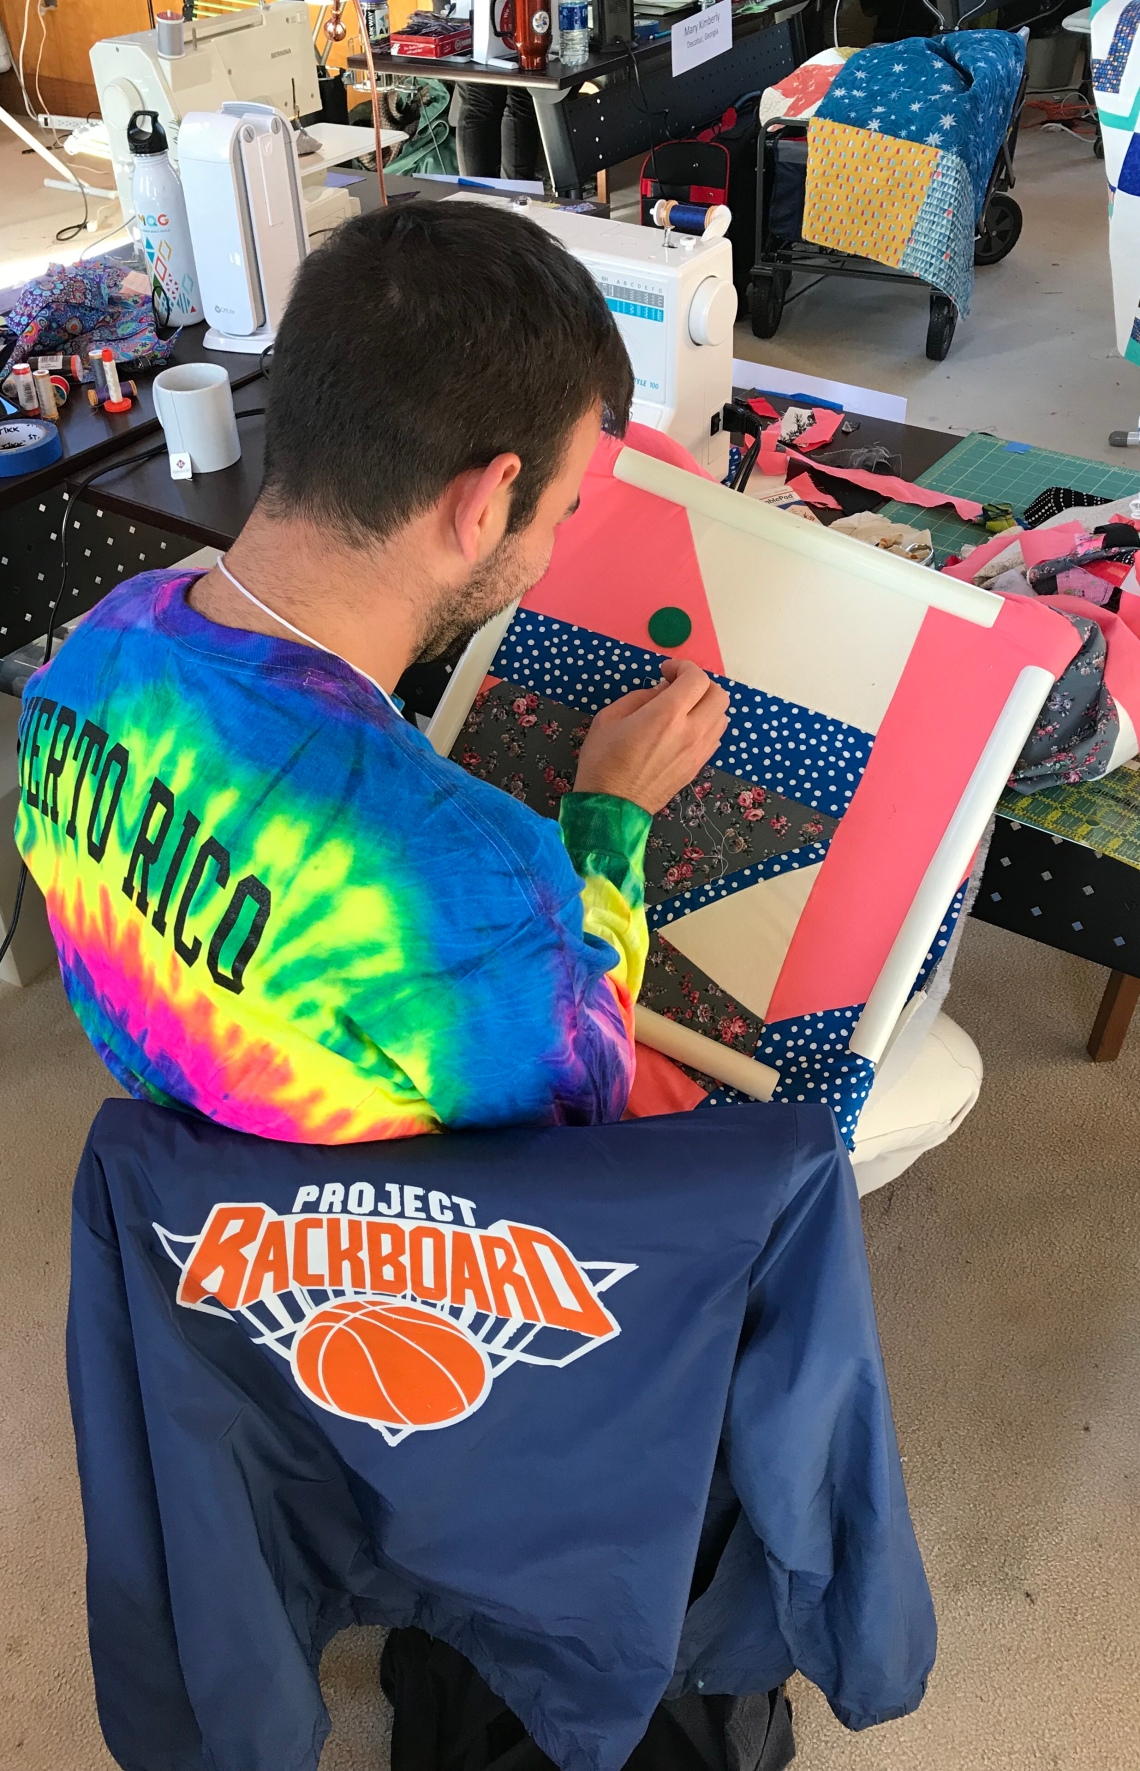 Sam hand stitching his 1st quilt. - Sophisticated SolWorks©